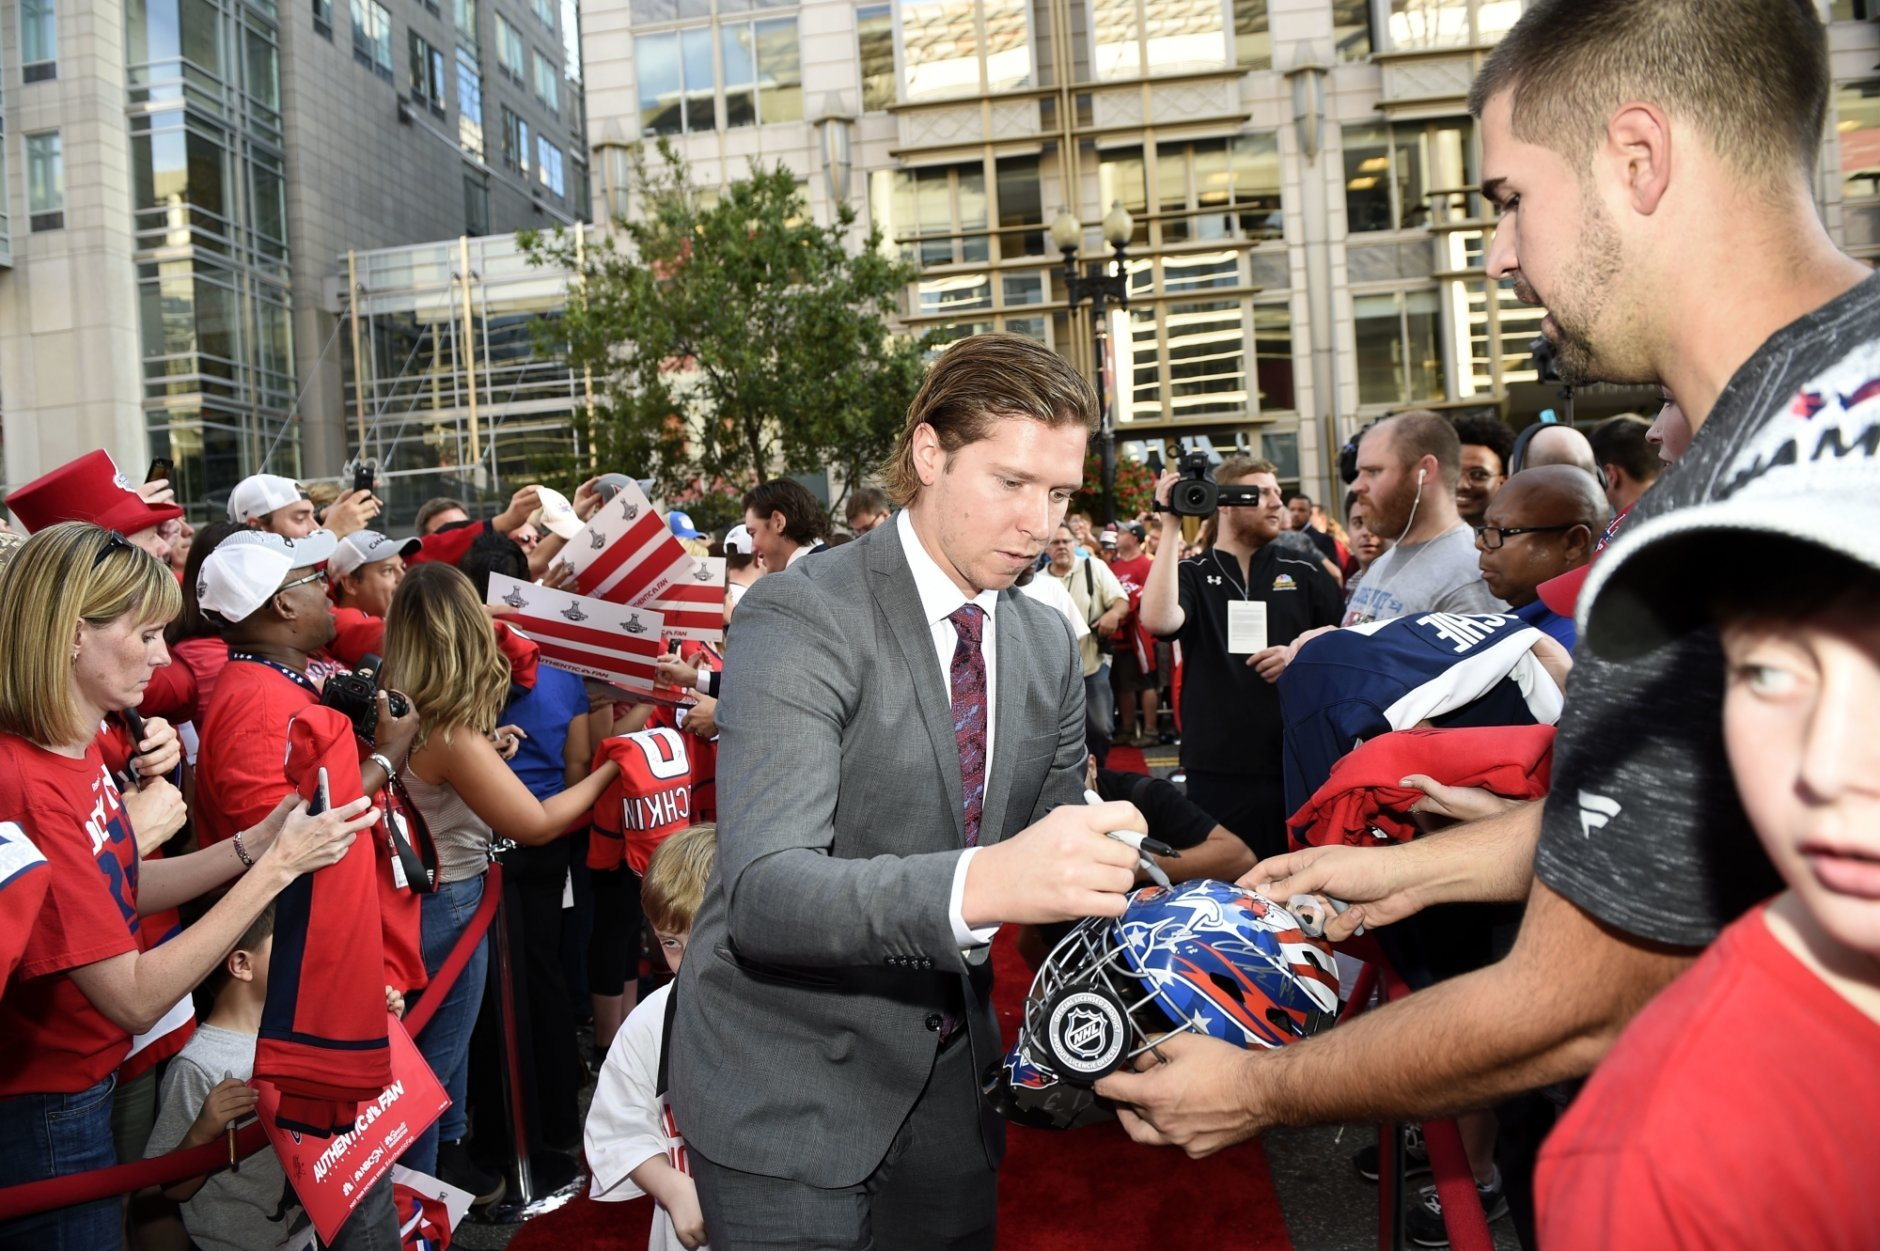 517a5d2f Washington Capitals' Nicklas Backstrom, of Sweden, signs for fans as he  walks the